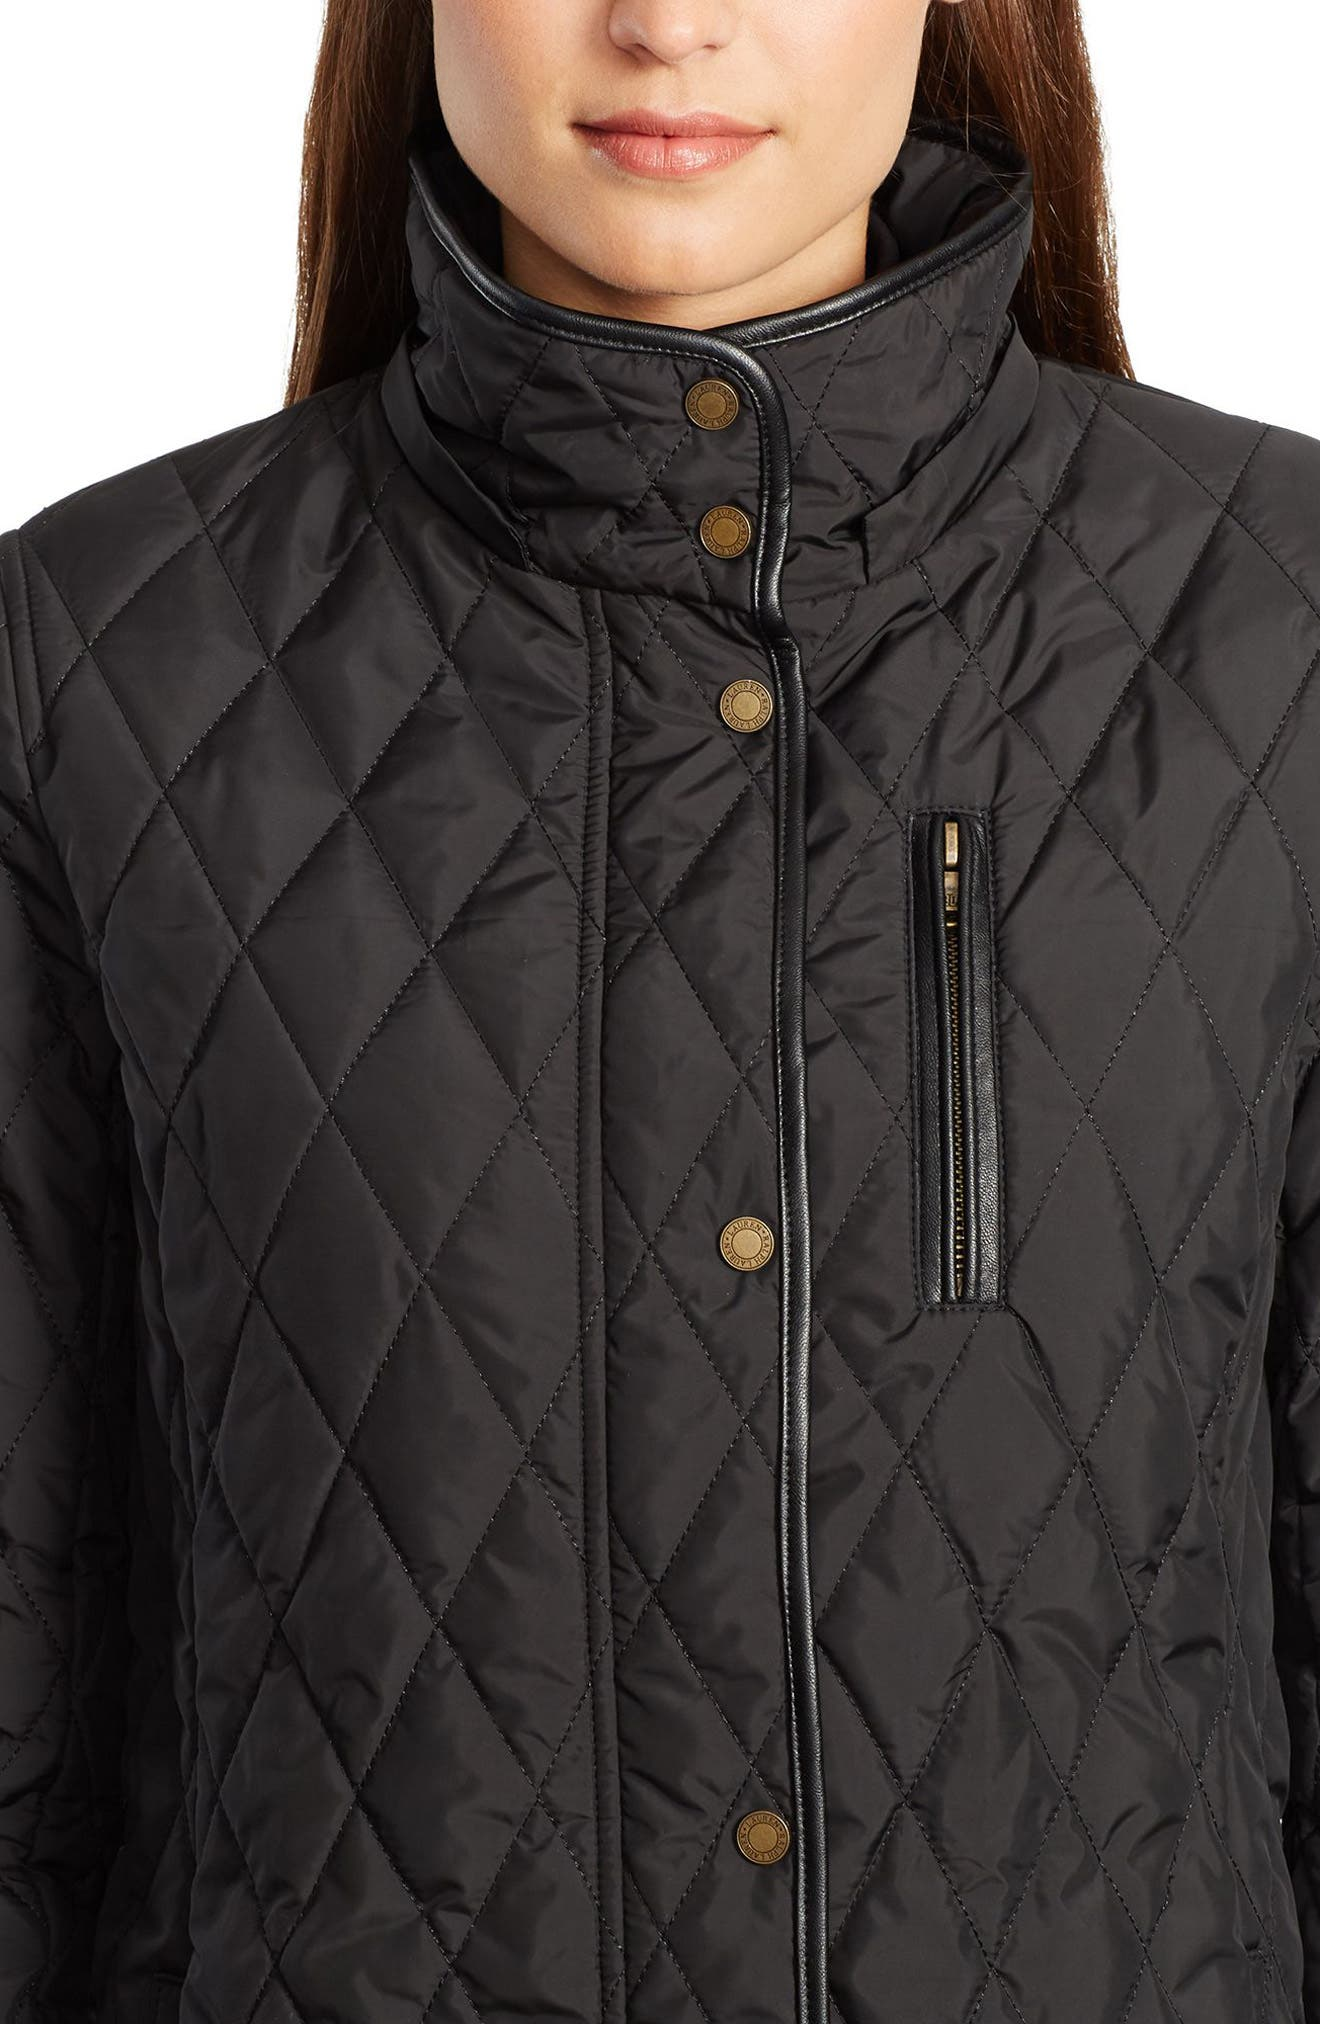 LAUREN RALPH LAUREN,                             Quilted Jacket,                             Alternate thumbnail 4, color,                             001